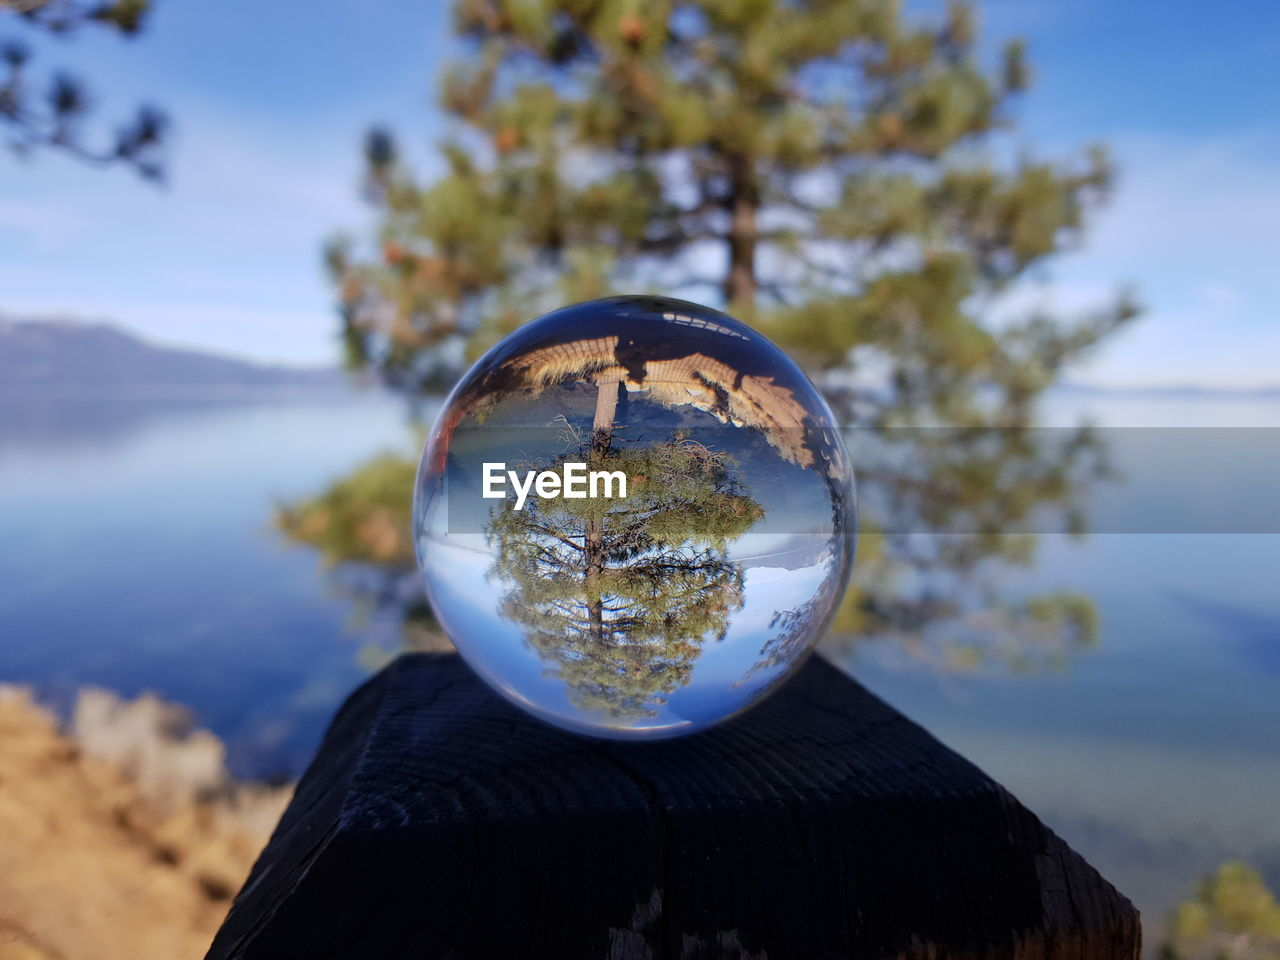 sphere, nature, focus on foreground, crystal ball, tree, sky, transparent, reflection, plant, outdoors, day, close-up, glass - material, water, beauty in nature, no people, land, scenics - nature, geometric shape